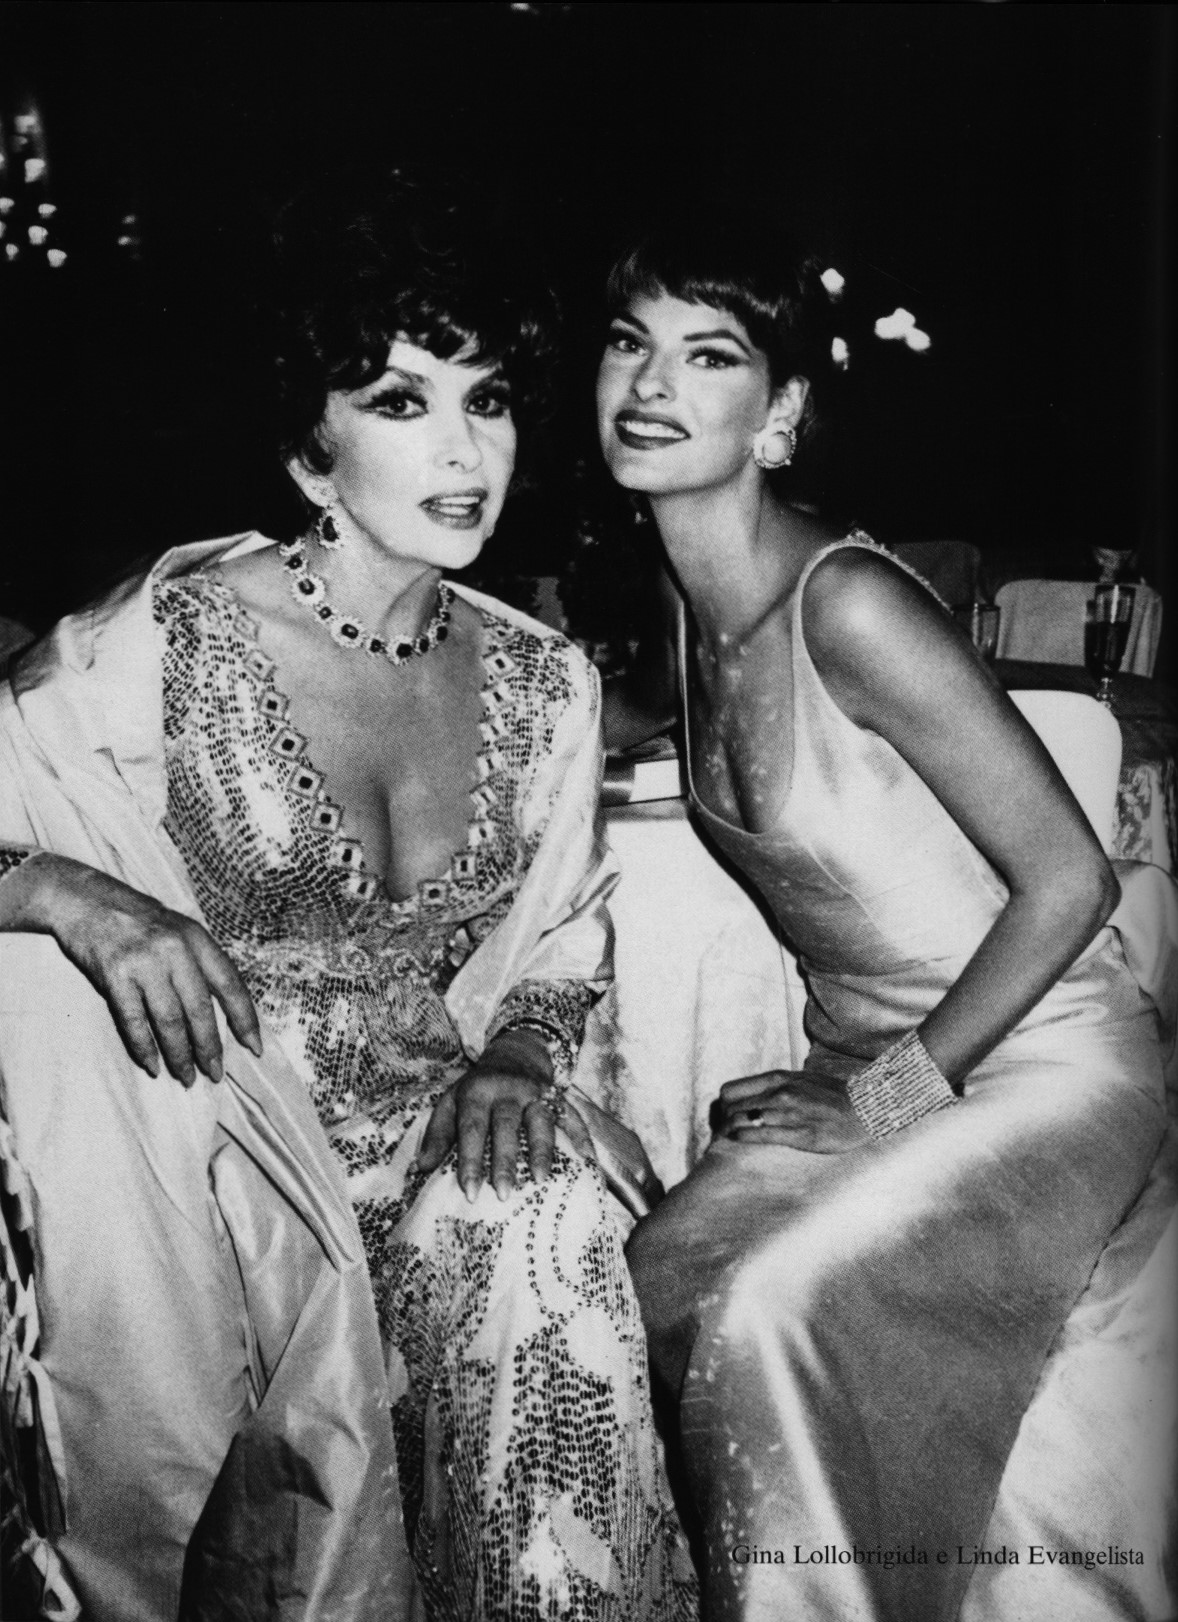 GINA LOLLOBRIGIDA AND LINDA EVANGELISTA | PHOTOGRAPHY ROXANNE LOWIT | VOGUE GIOIELLO | SEPTEMBER 2000